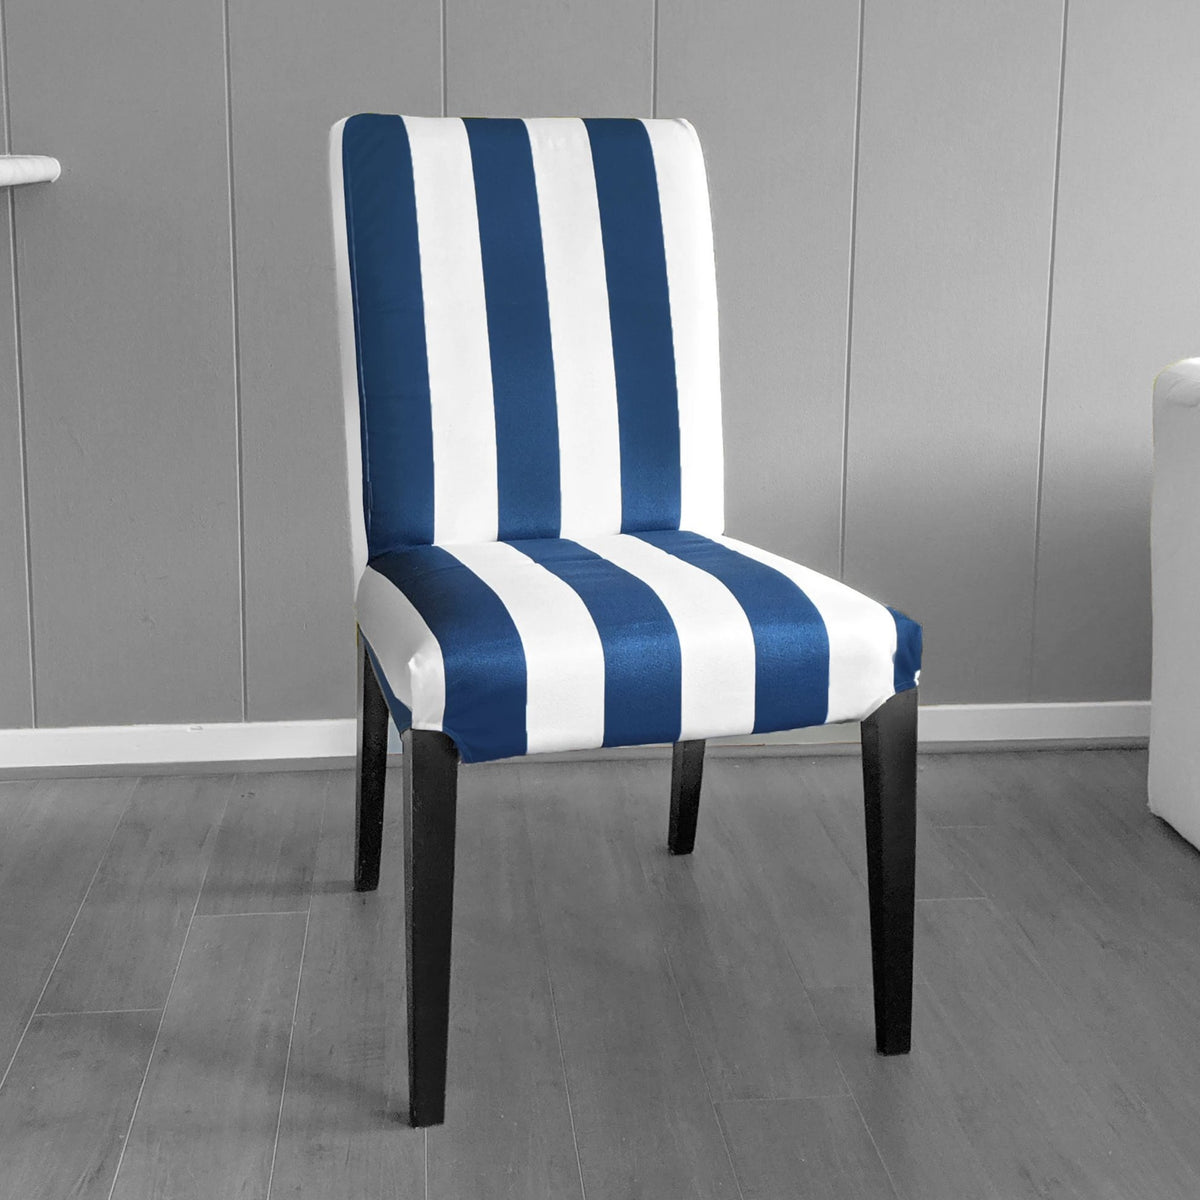 Picture of: Ikea Henriksdsal Dining Chair Cover Navy Blue Cabana Stripe Affordable Designer Custom Handmade Trendy Fashionable Locally Made High Quality